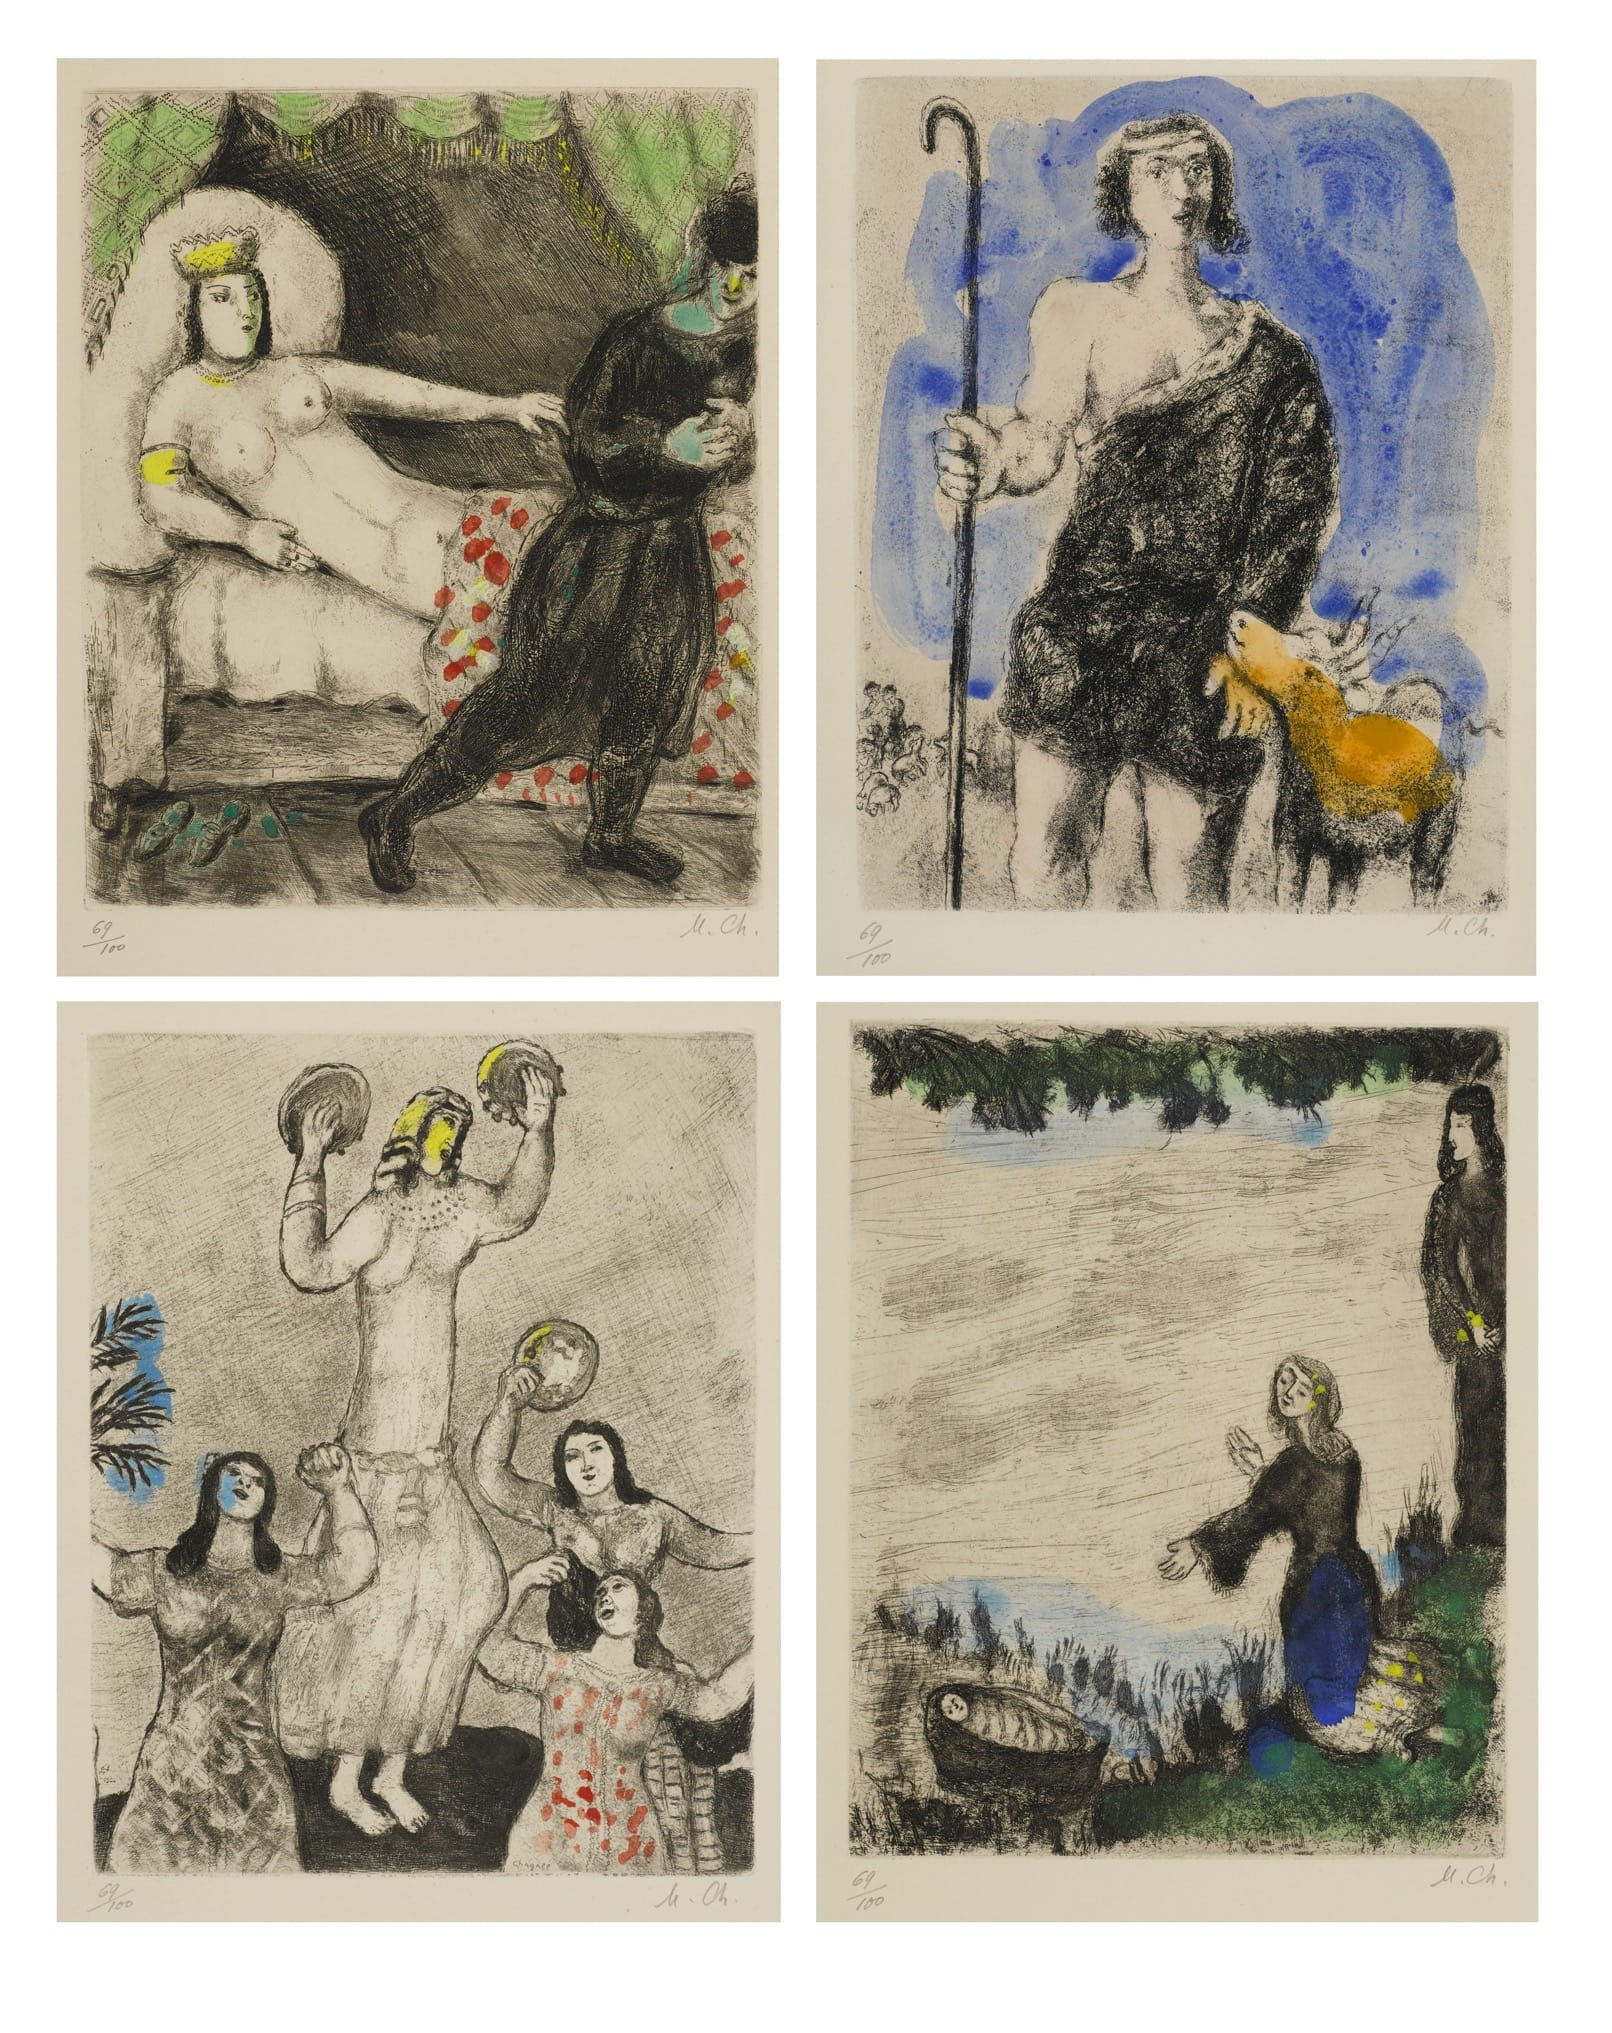 Marc Chagall, La Bible, 1931-1956, Etchings on Arches paper. Courtesy: Bonhams